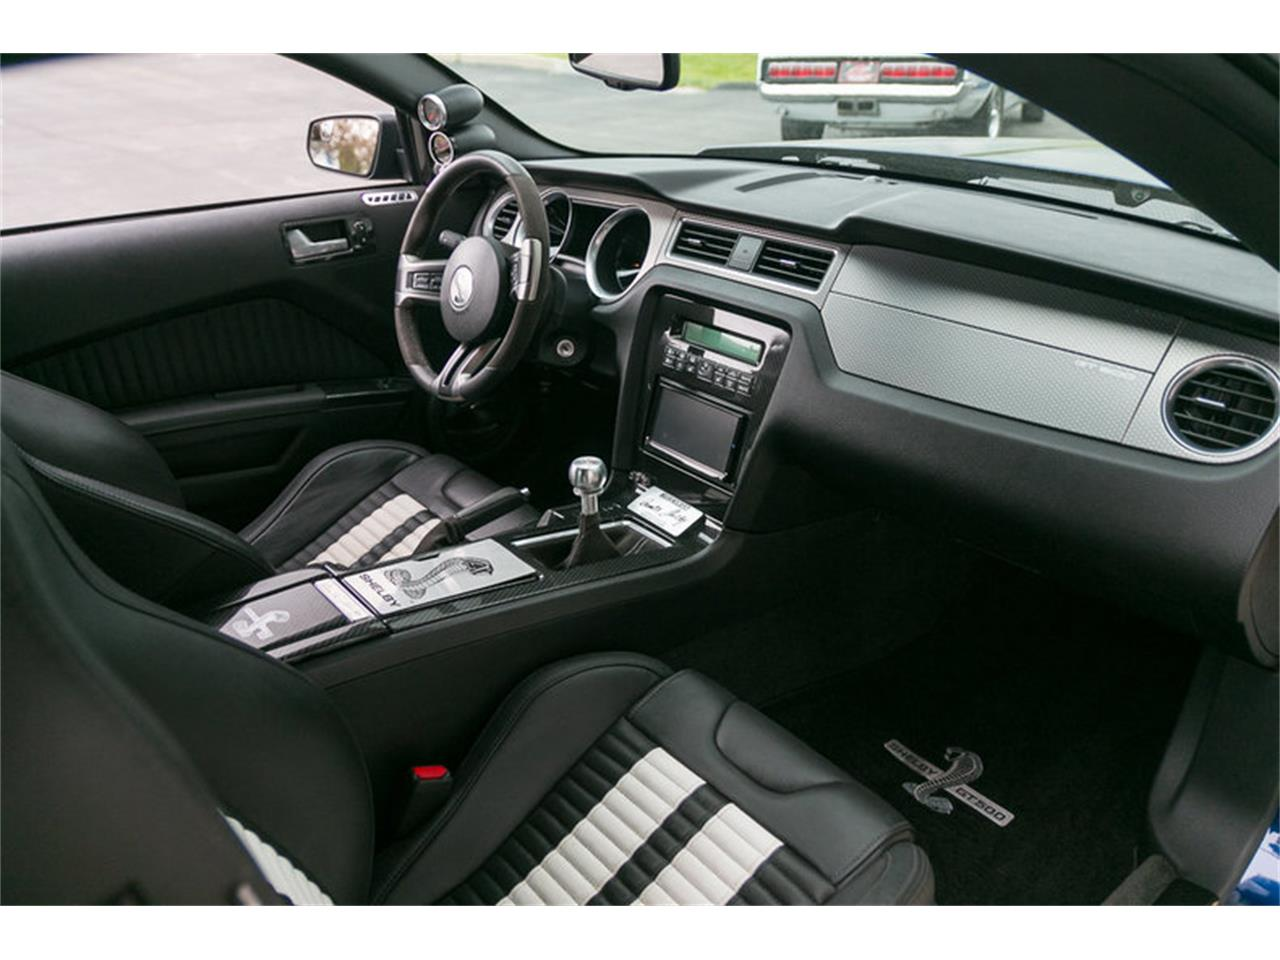 Large Picture of 2012 Ford Mustang located in St. Charles Missouri - $49,995.00 - L68T